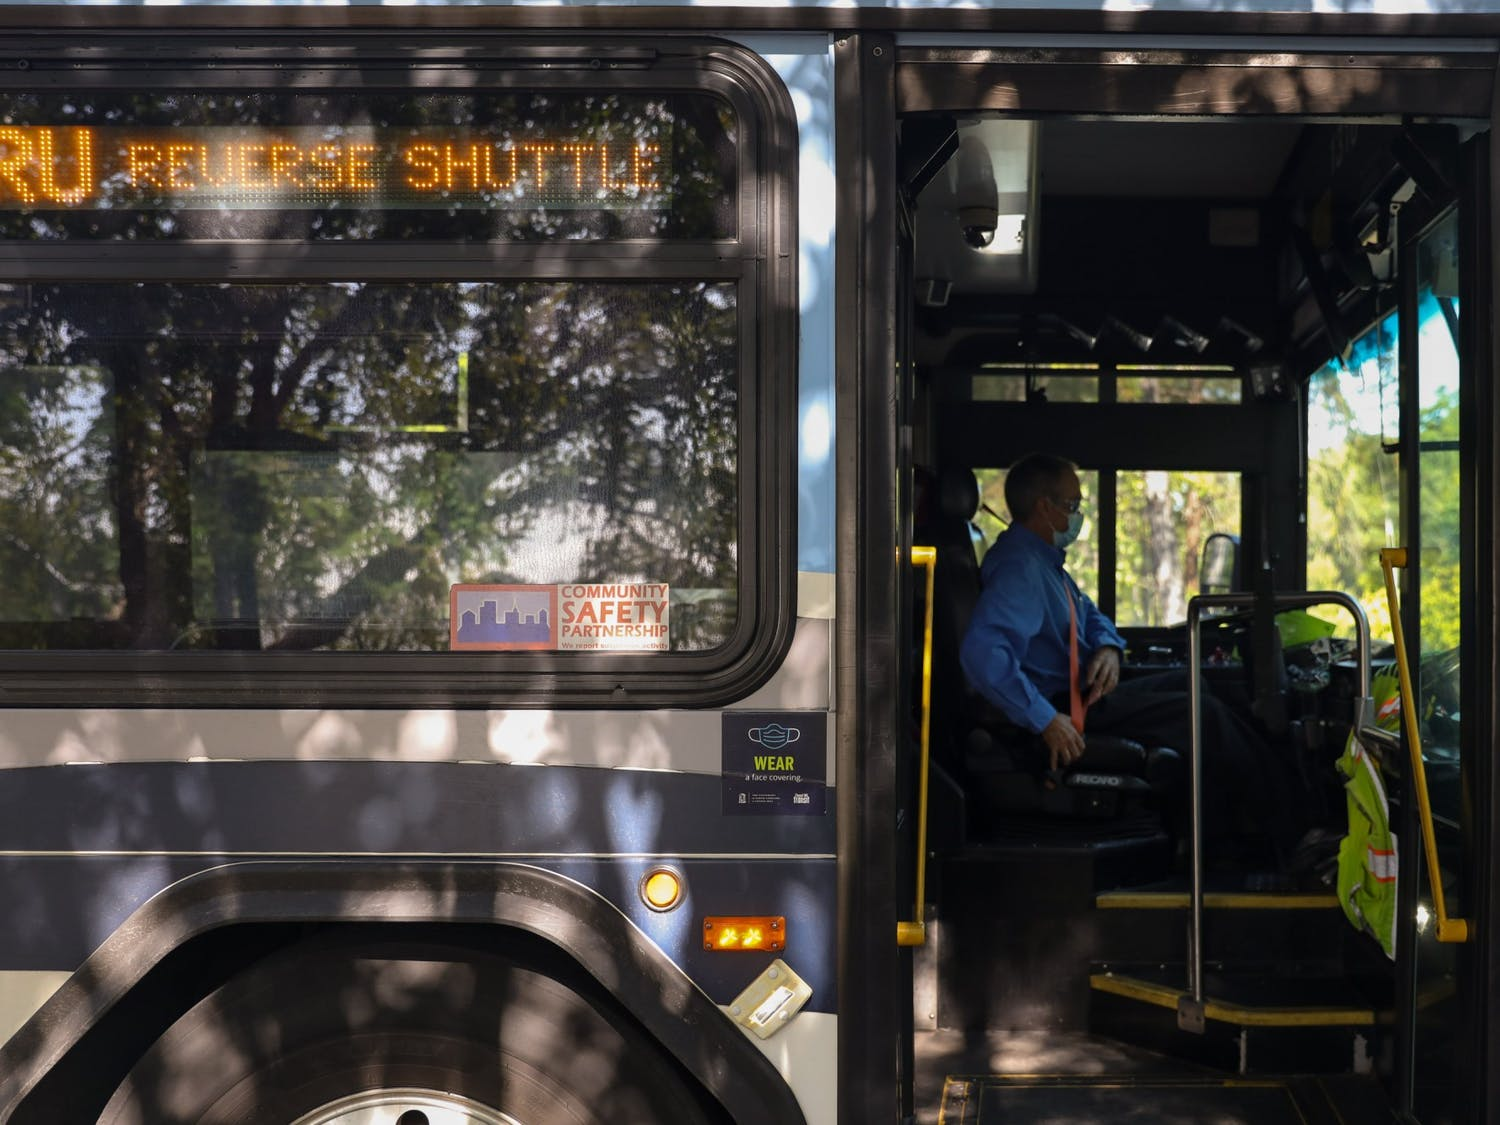 A Chapel Hill Transit bus driver buckles their seat belt on Sept. 15, 2021. Chapel Hill Transit is looking to install temporary changes in order to increase the reliability of the bus system in the wake of a staffing shortage.